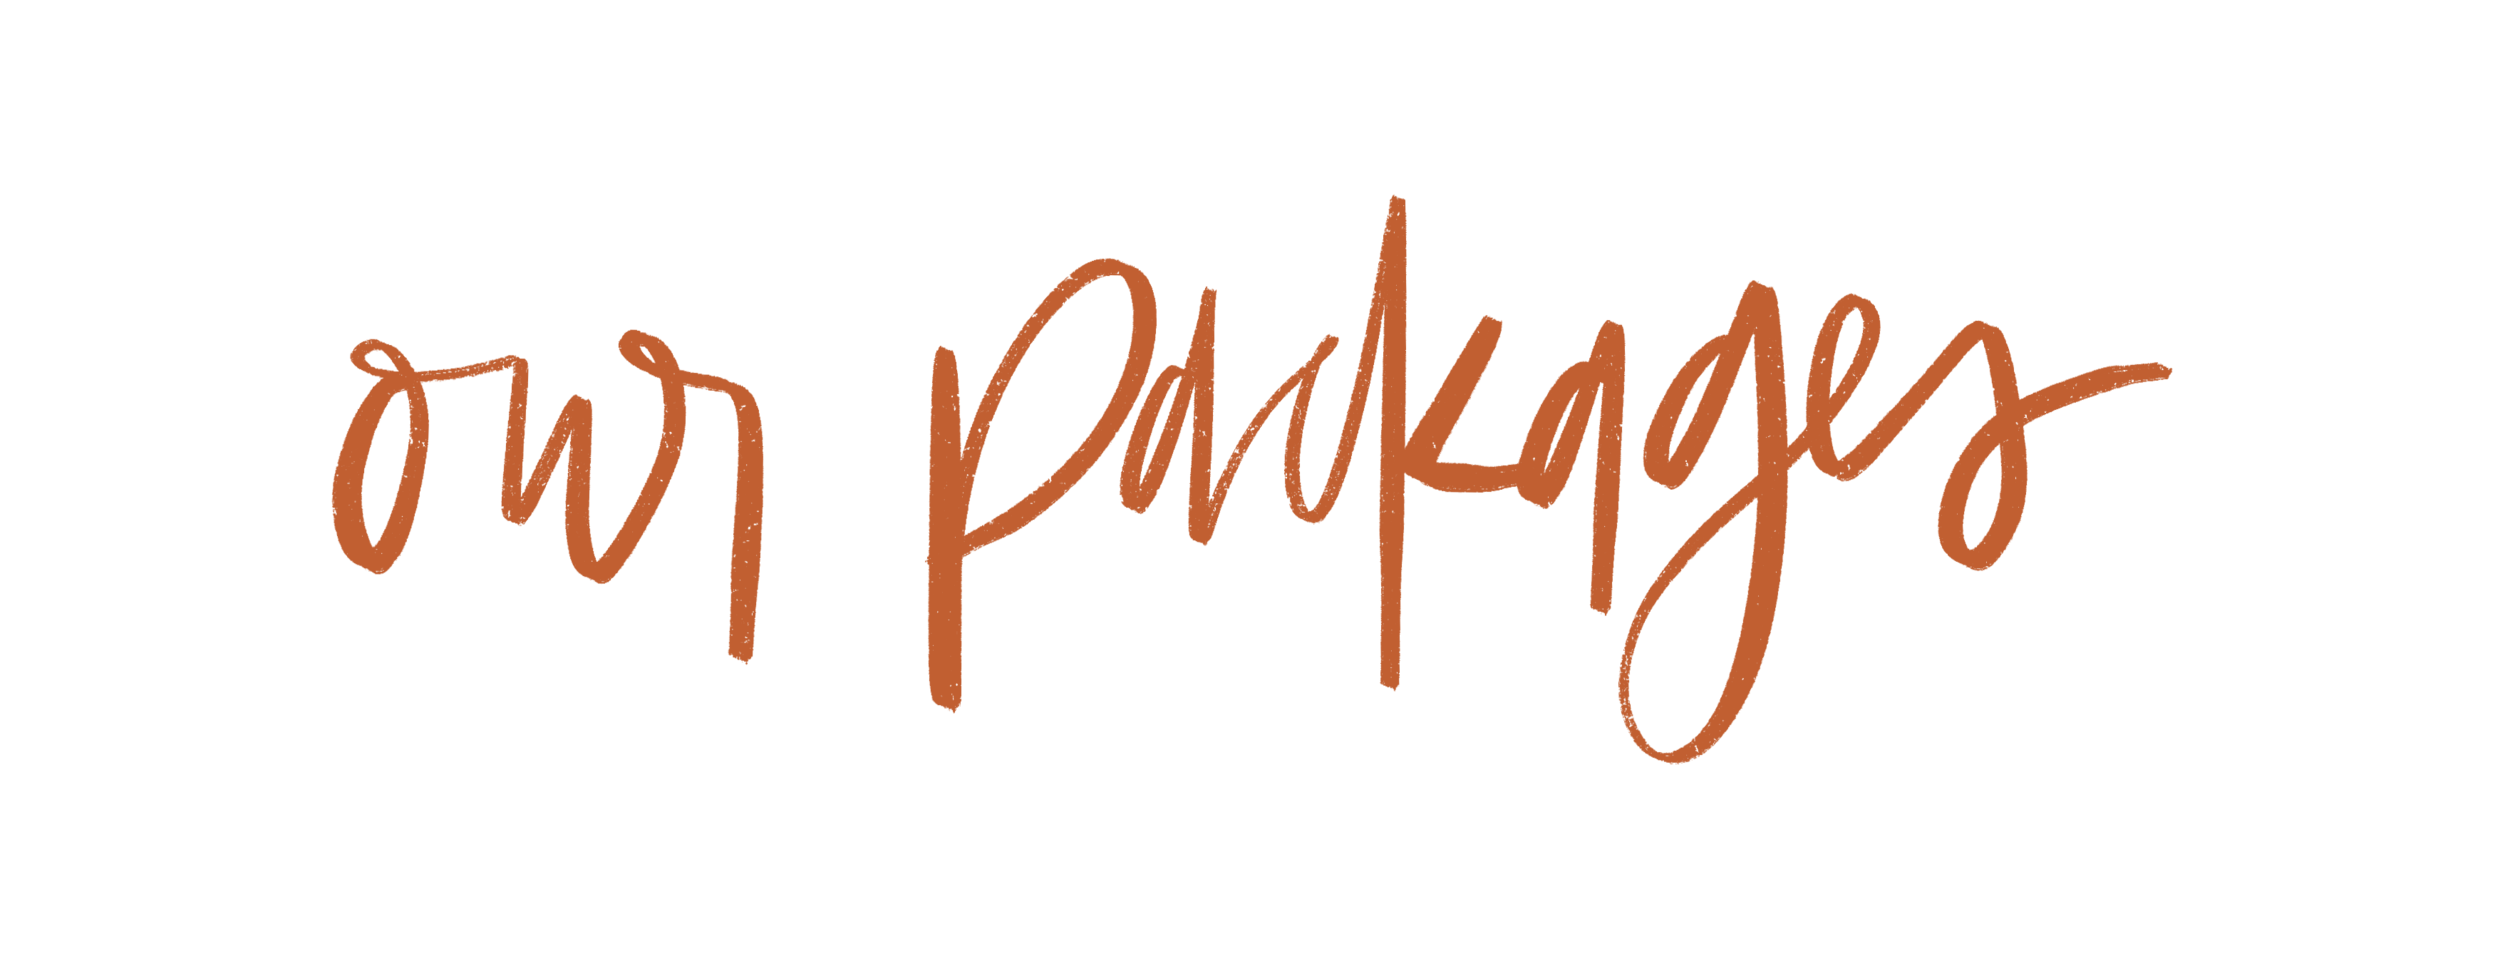 Our Packages.png